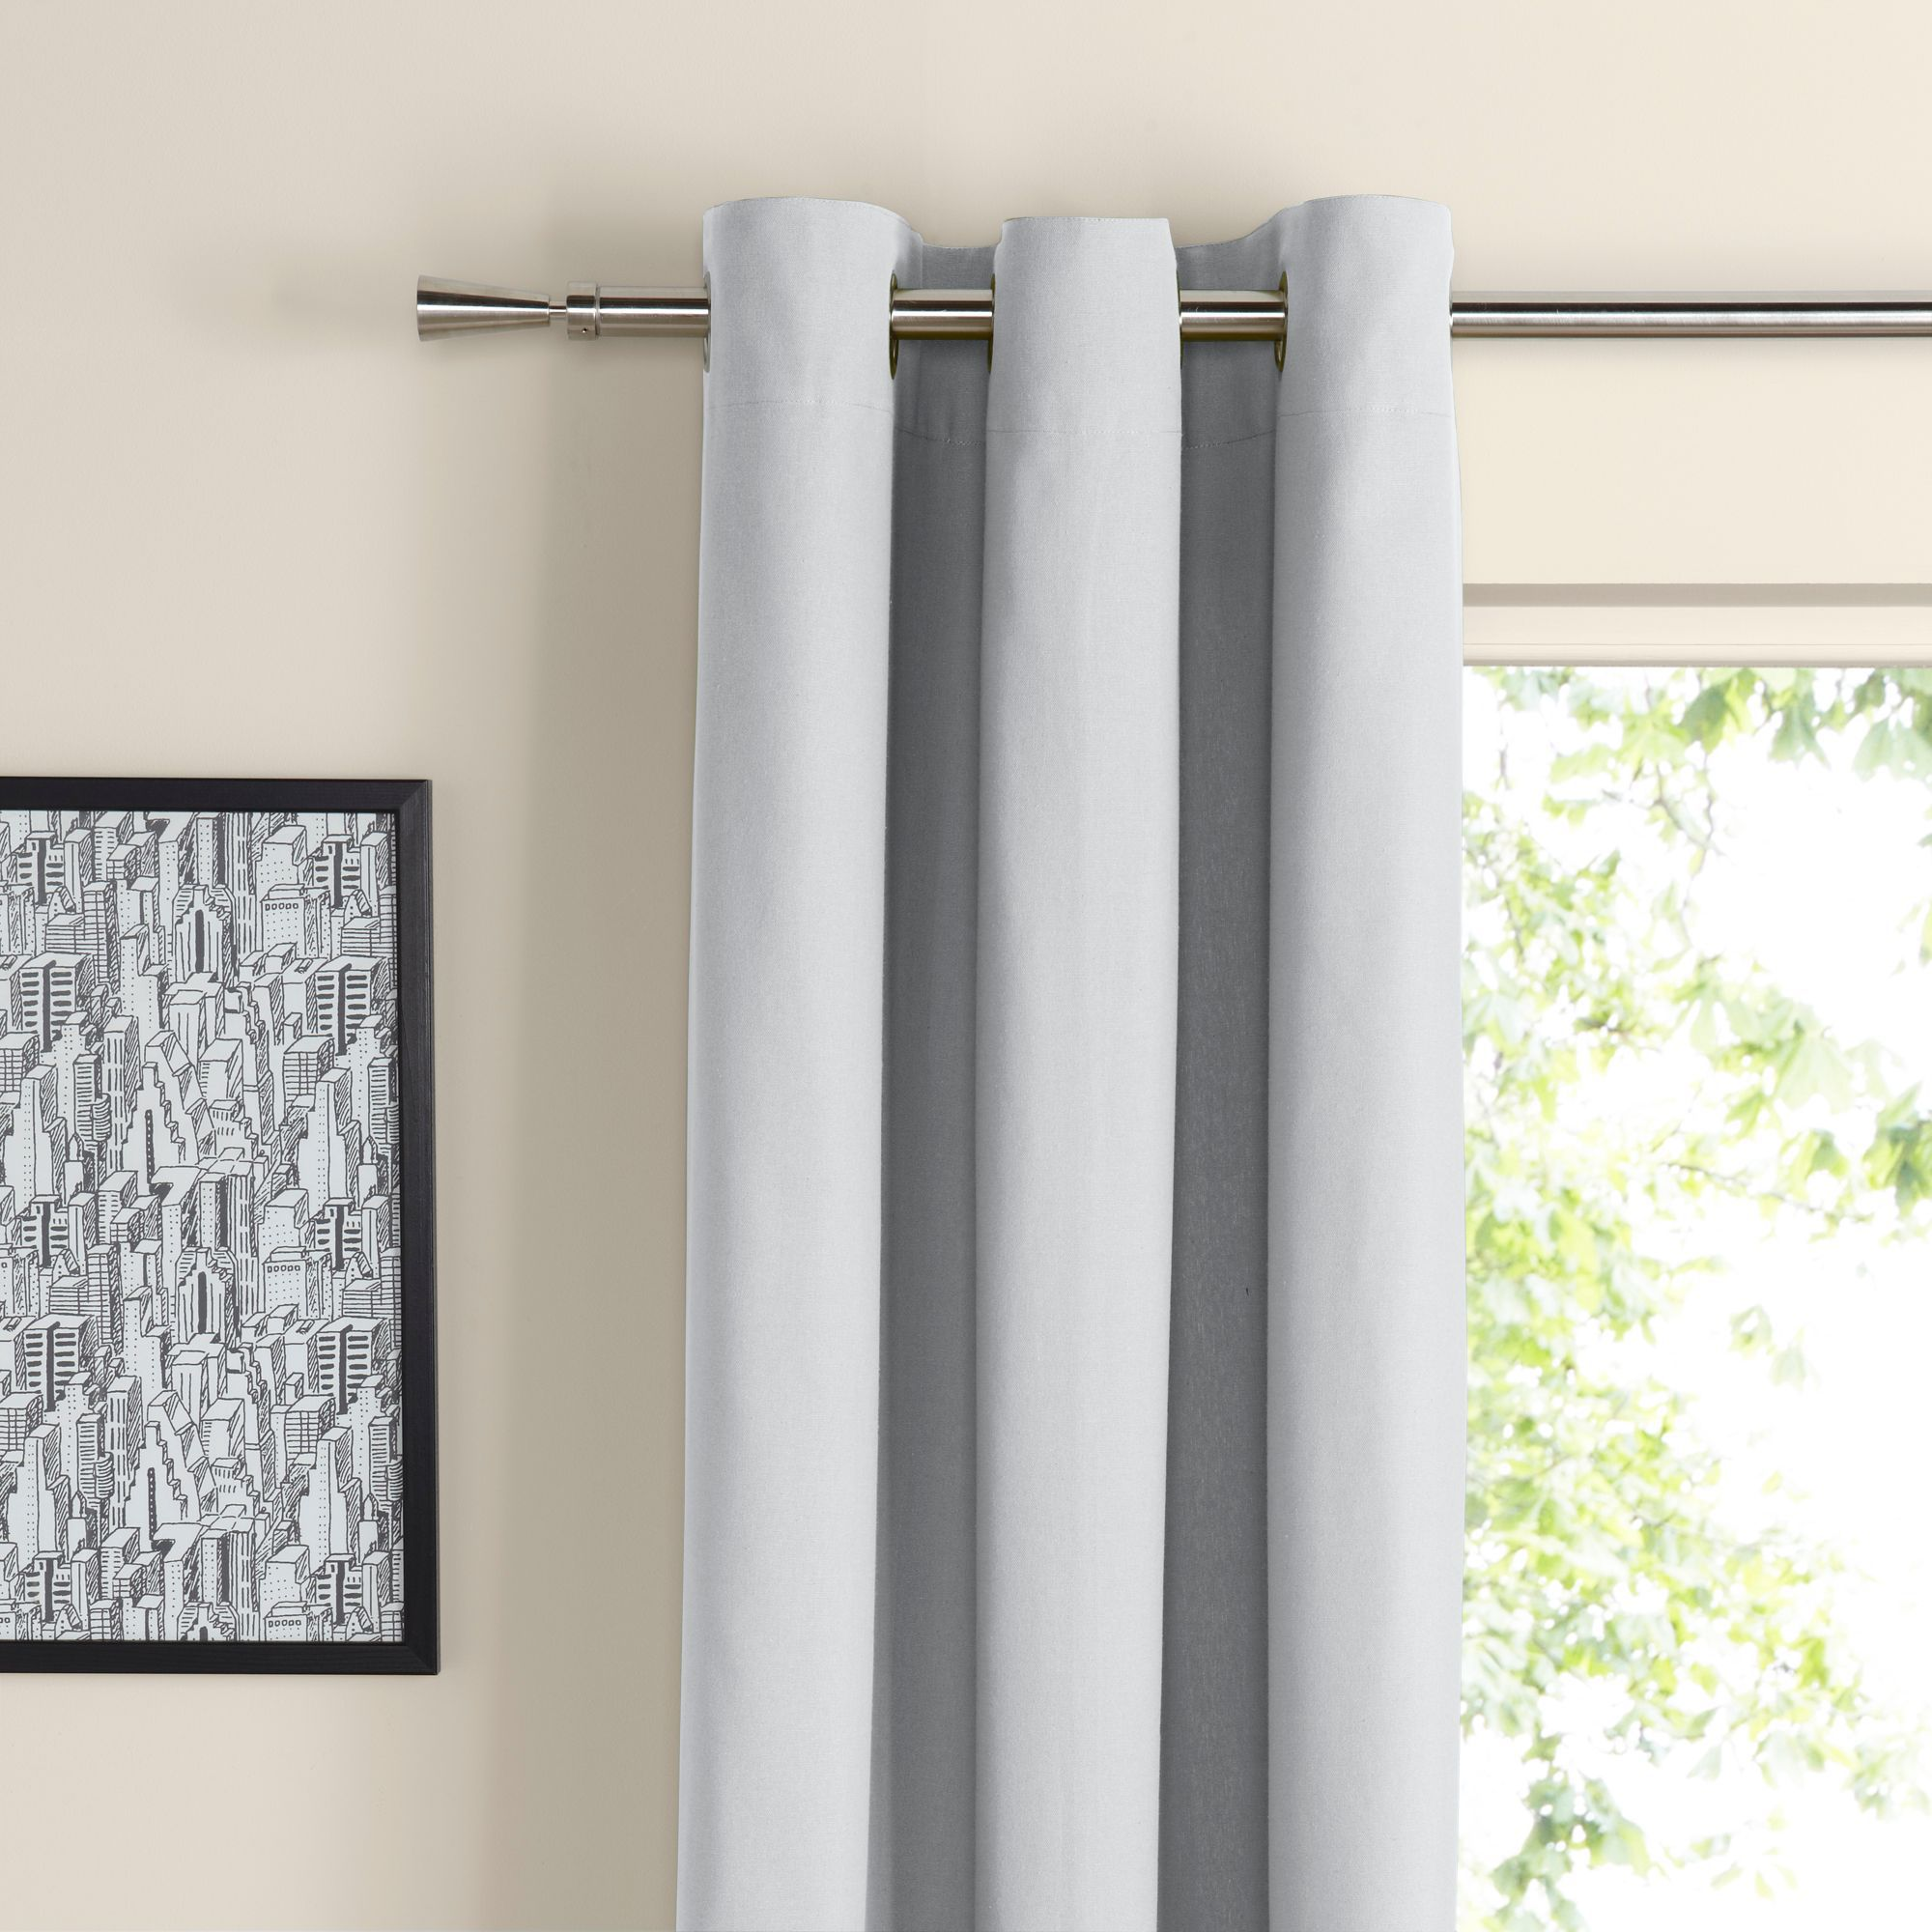 Zen Ecru Plain Eyelet Curtains W 167 Cm L 183 Departments